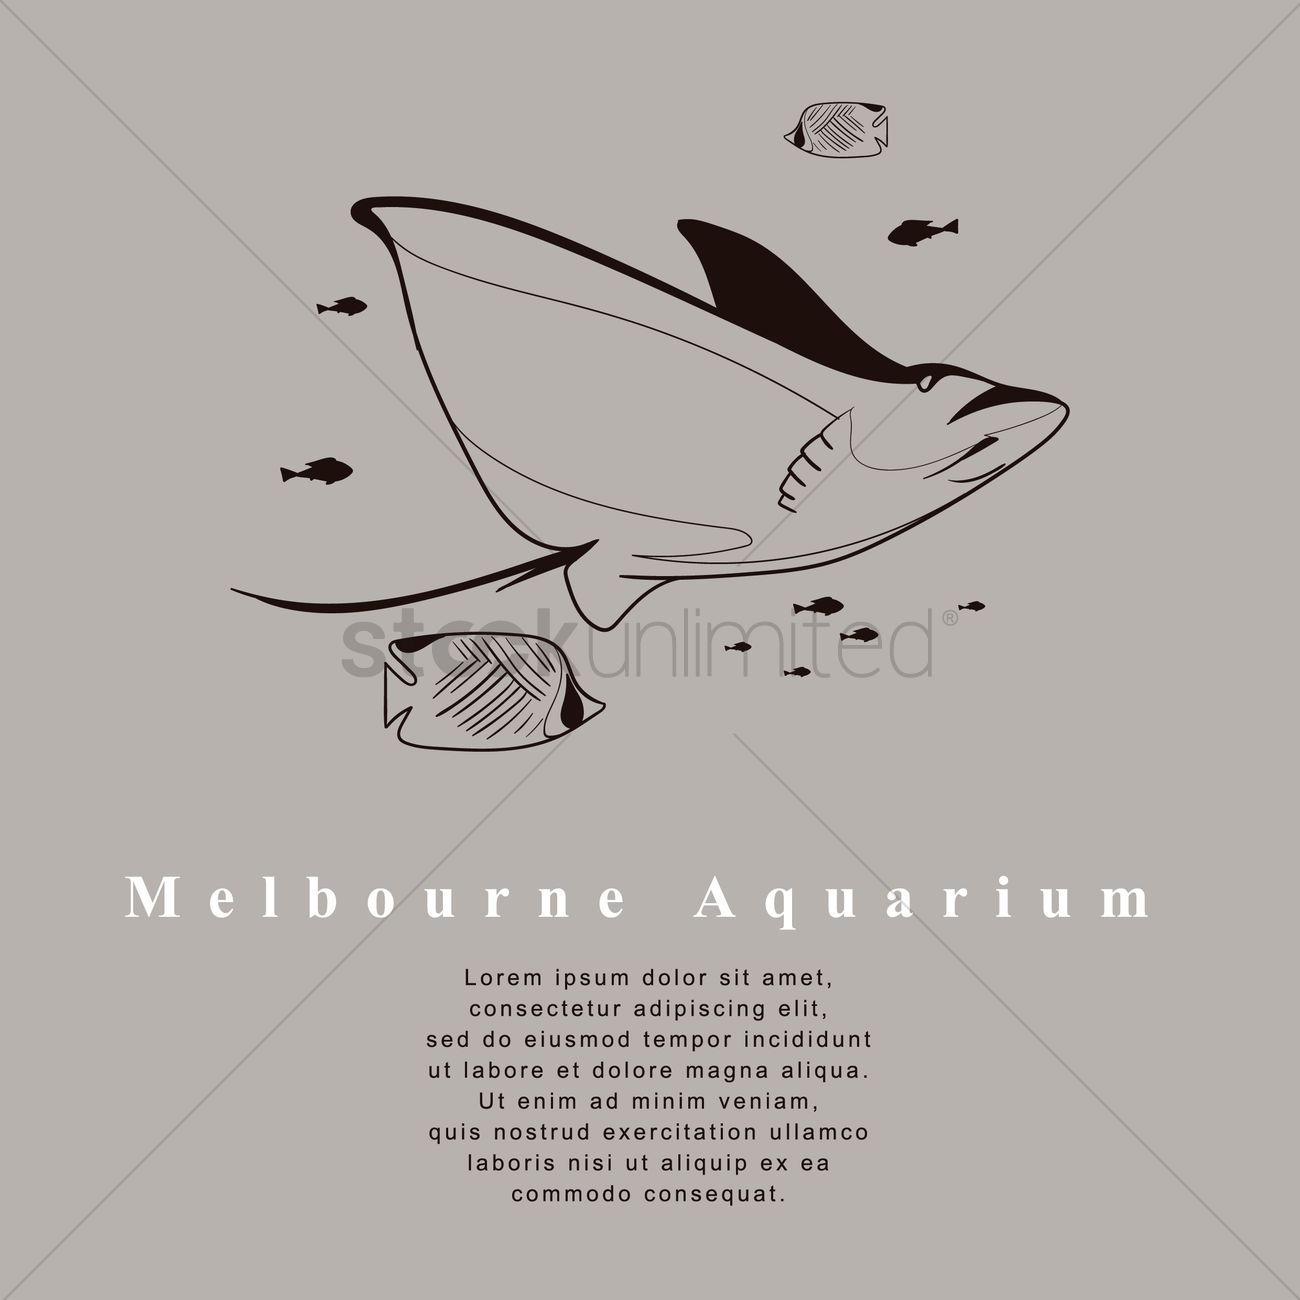 Melbourne aquarium underwater fish design Vector Image.